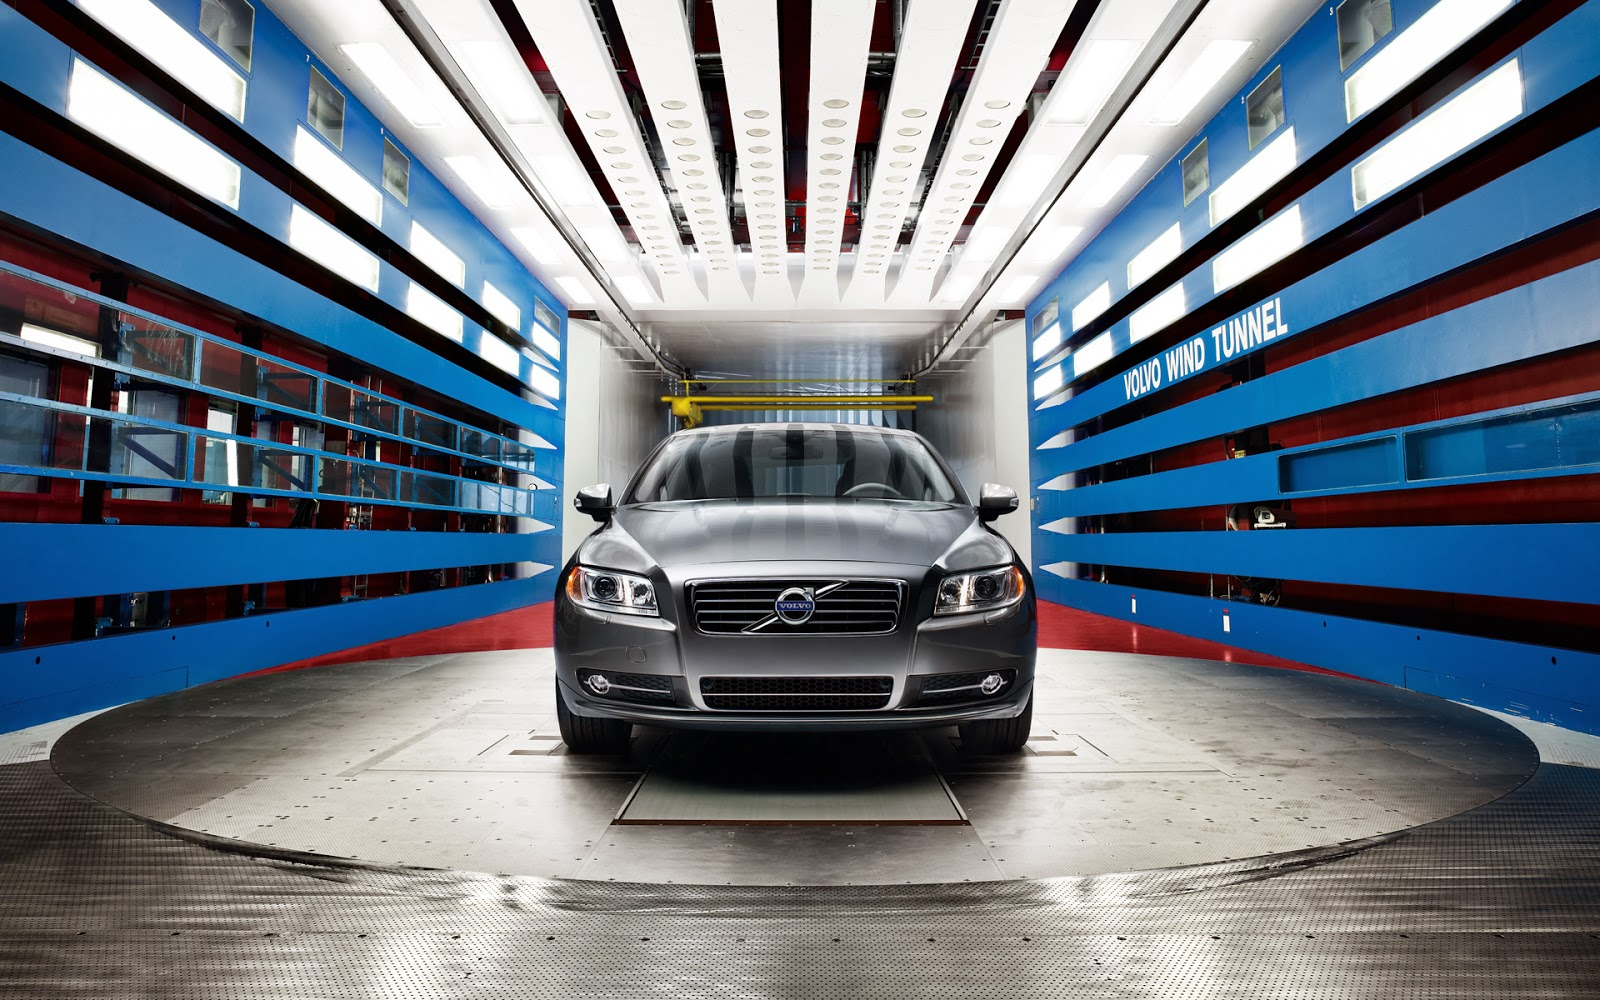 Motoring-Malaysia: The reason why Volvo cars aren't selling